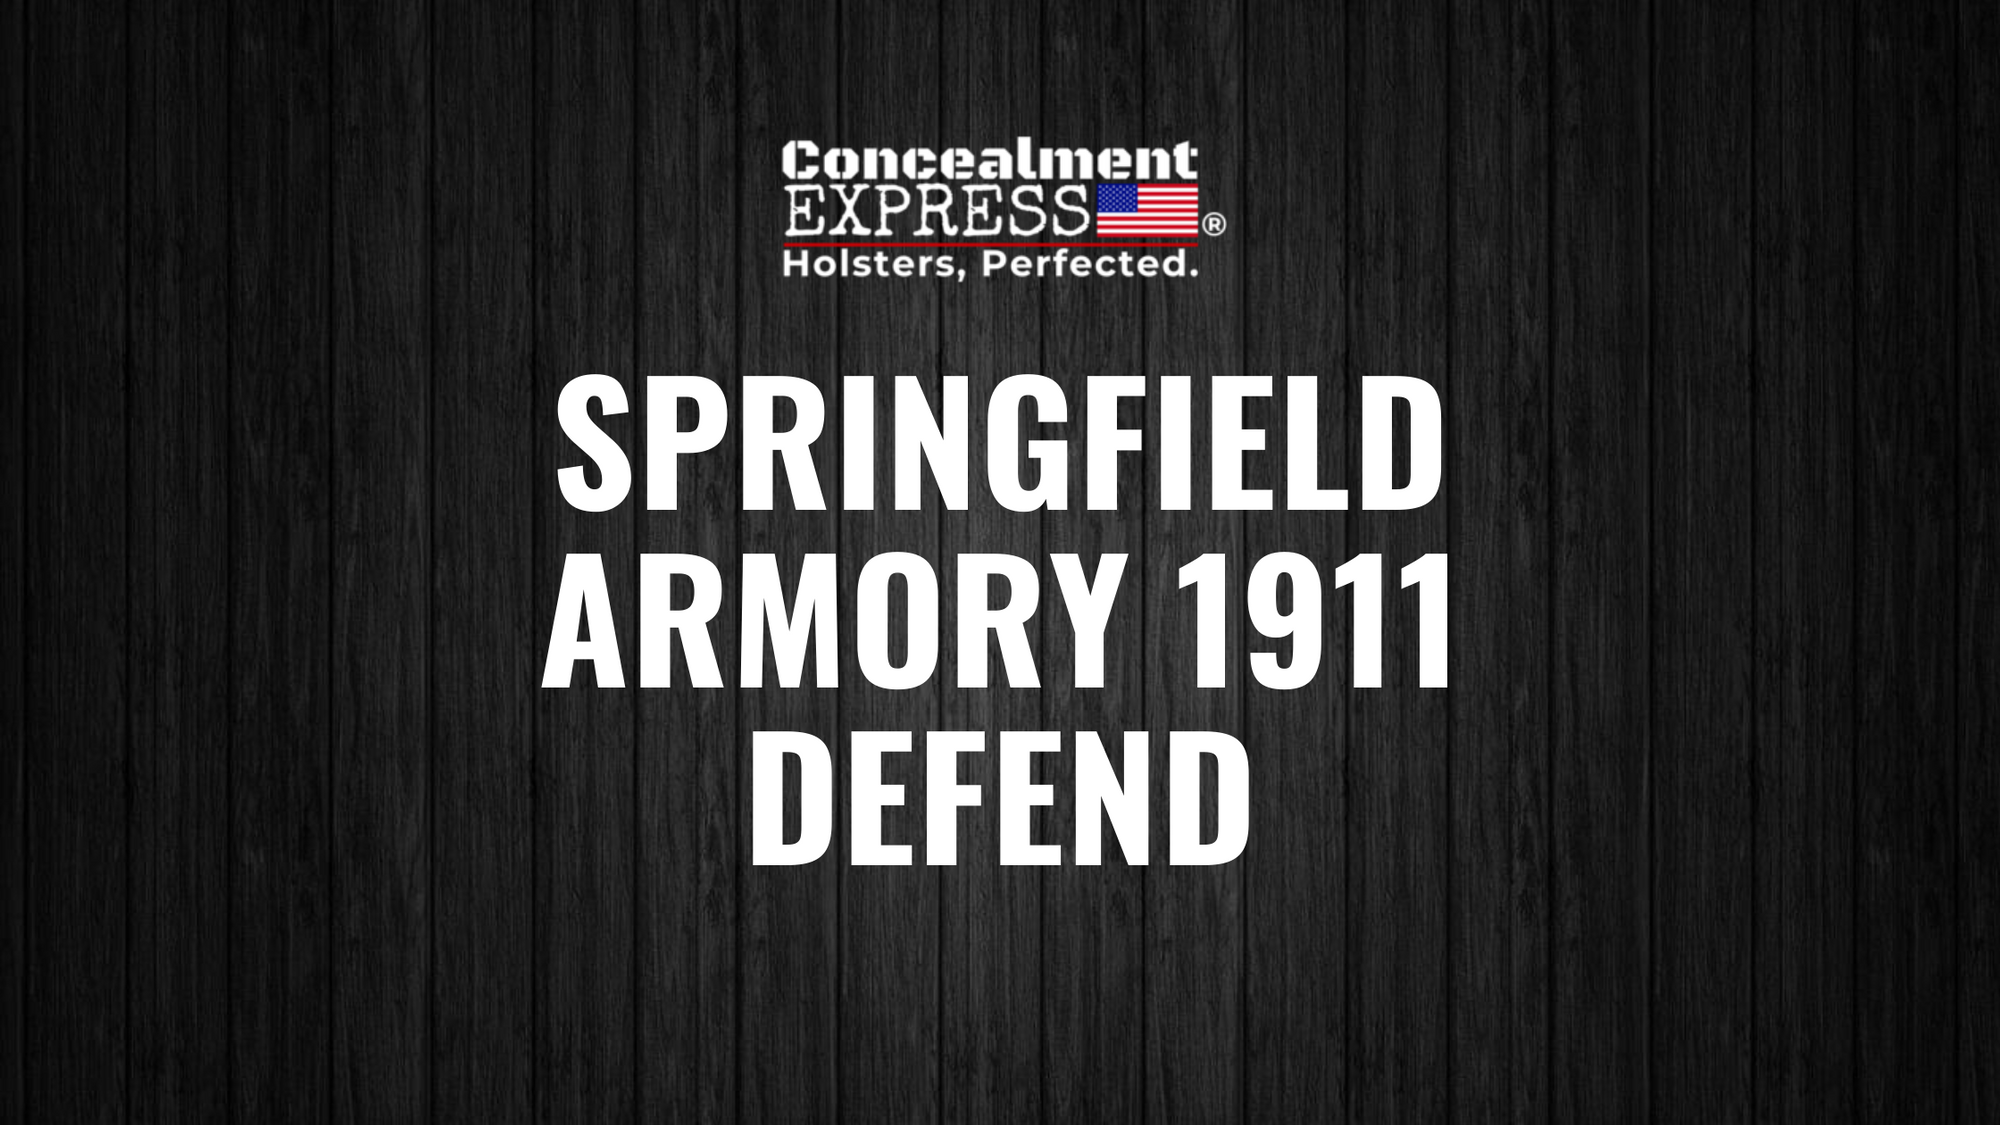 Springfield Armory 1911 Defend